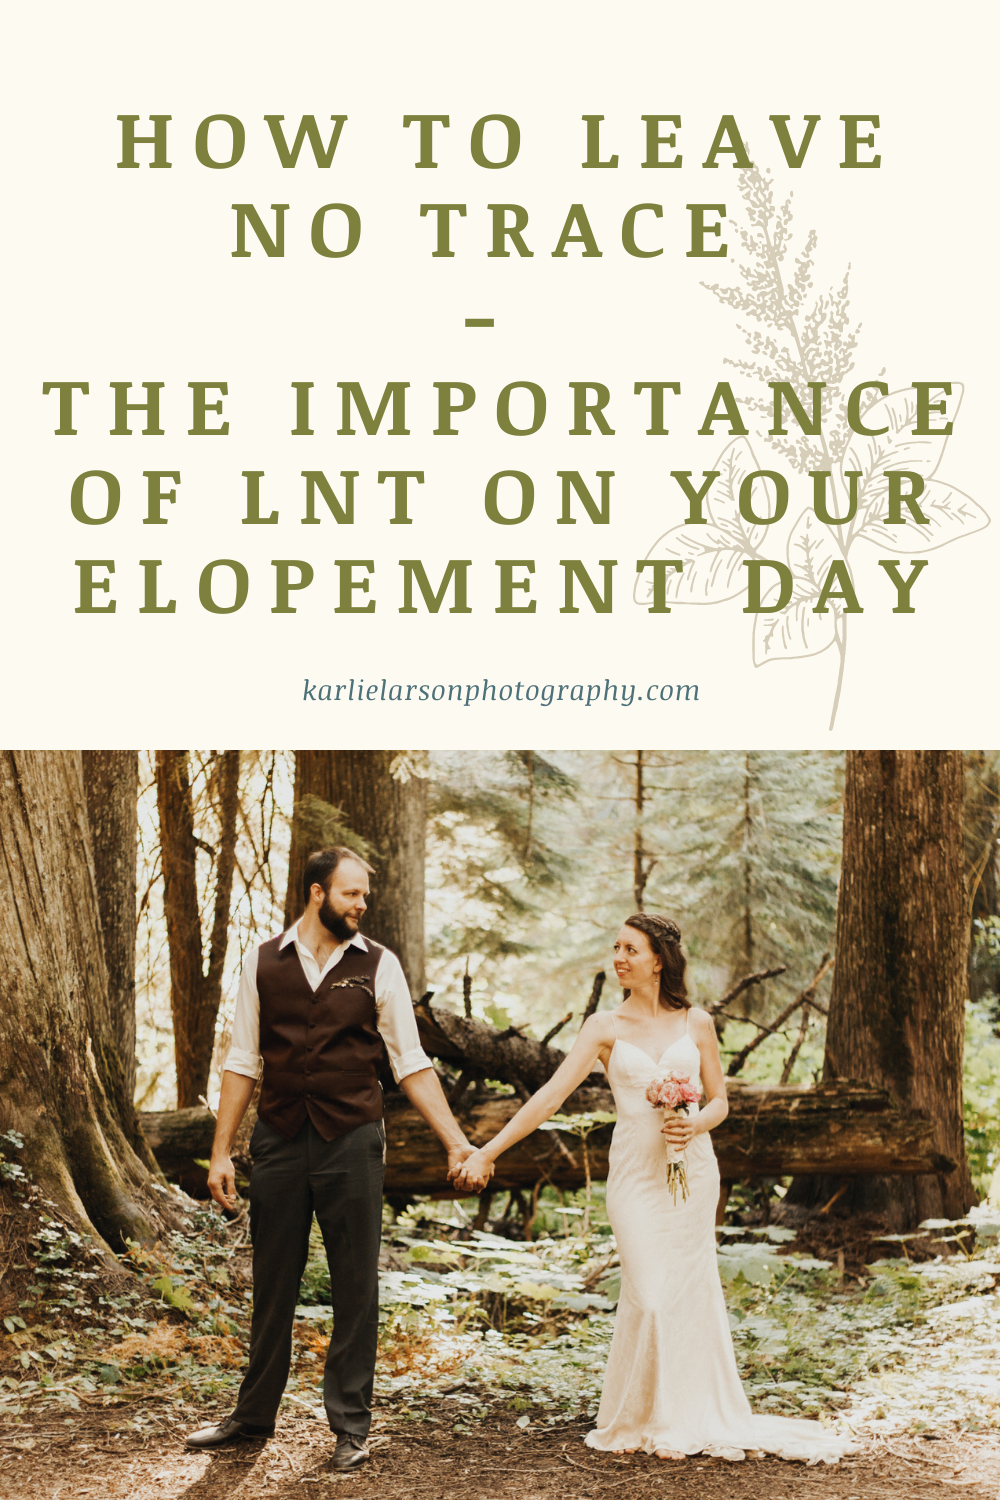 how to leave no trace, the importance of leave no trace on your elopement day, outdoor wedding tips